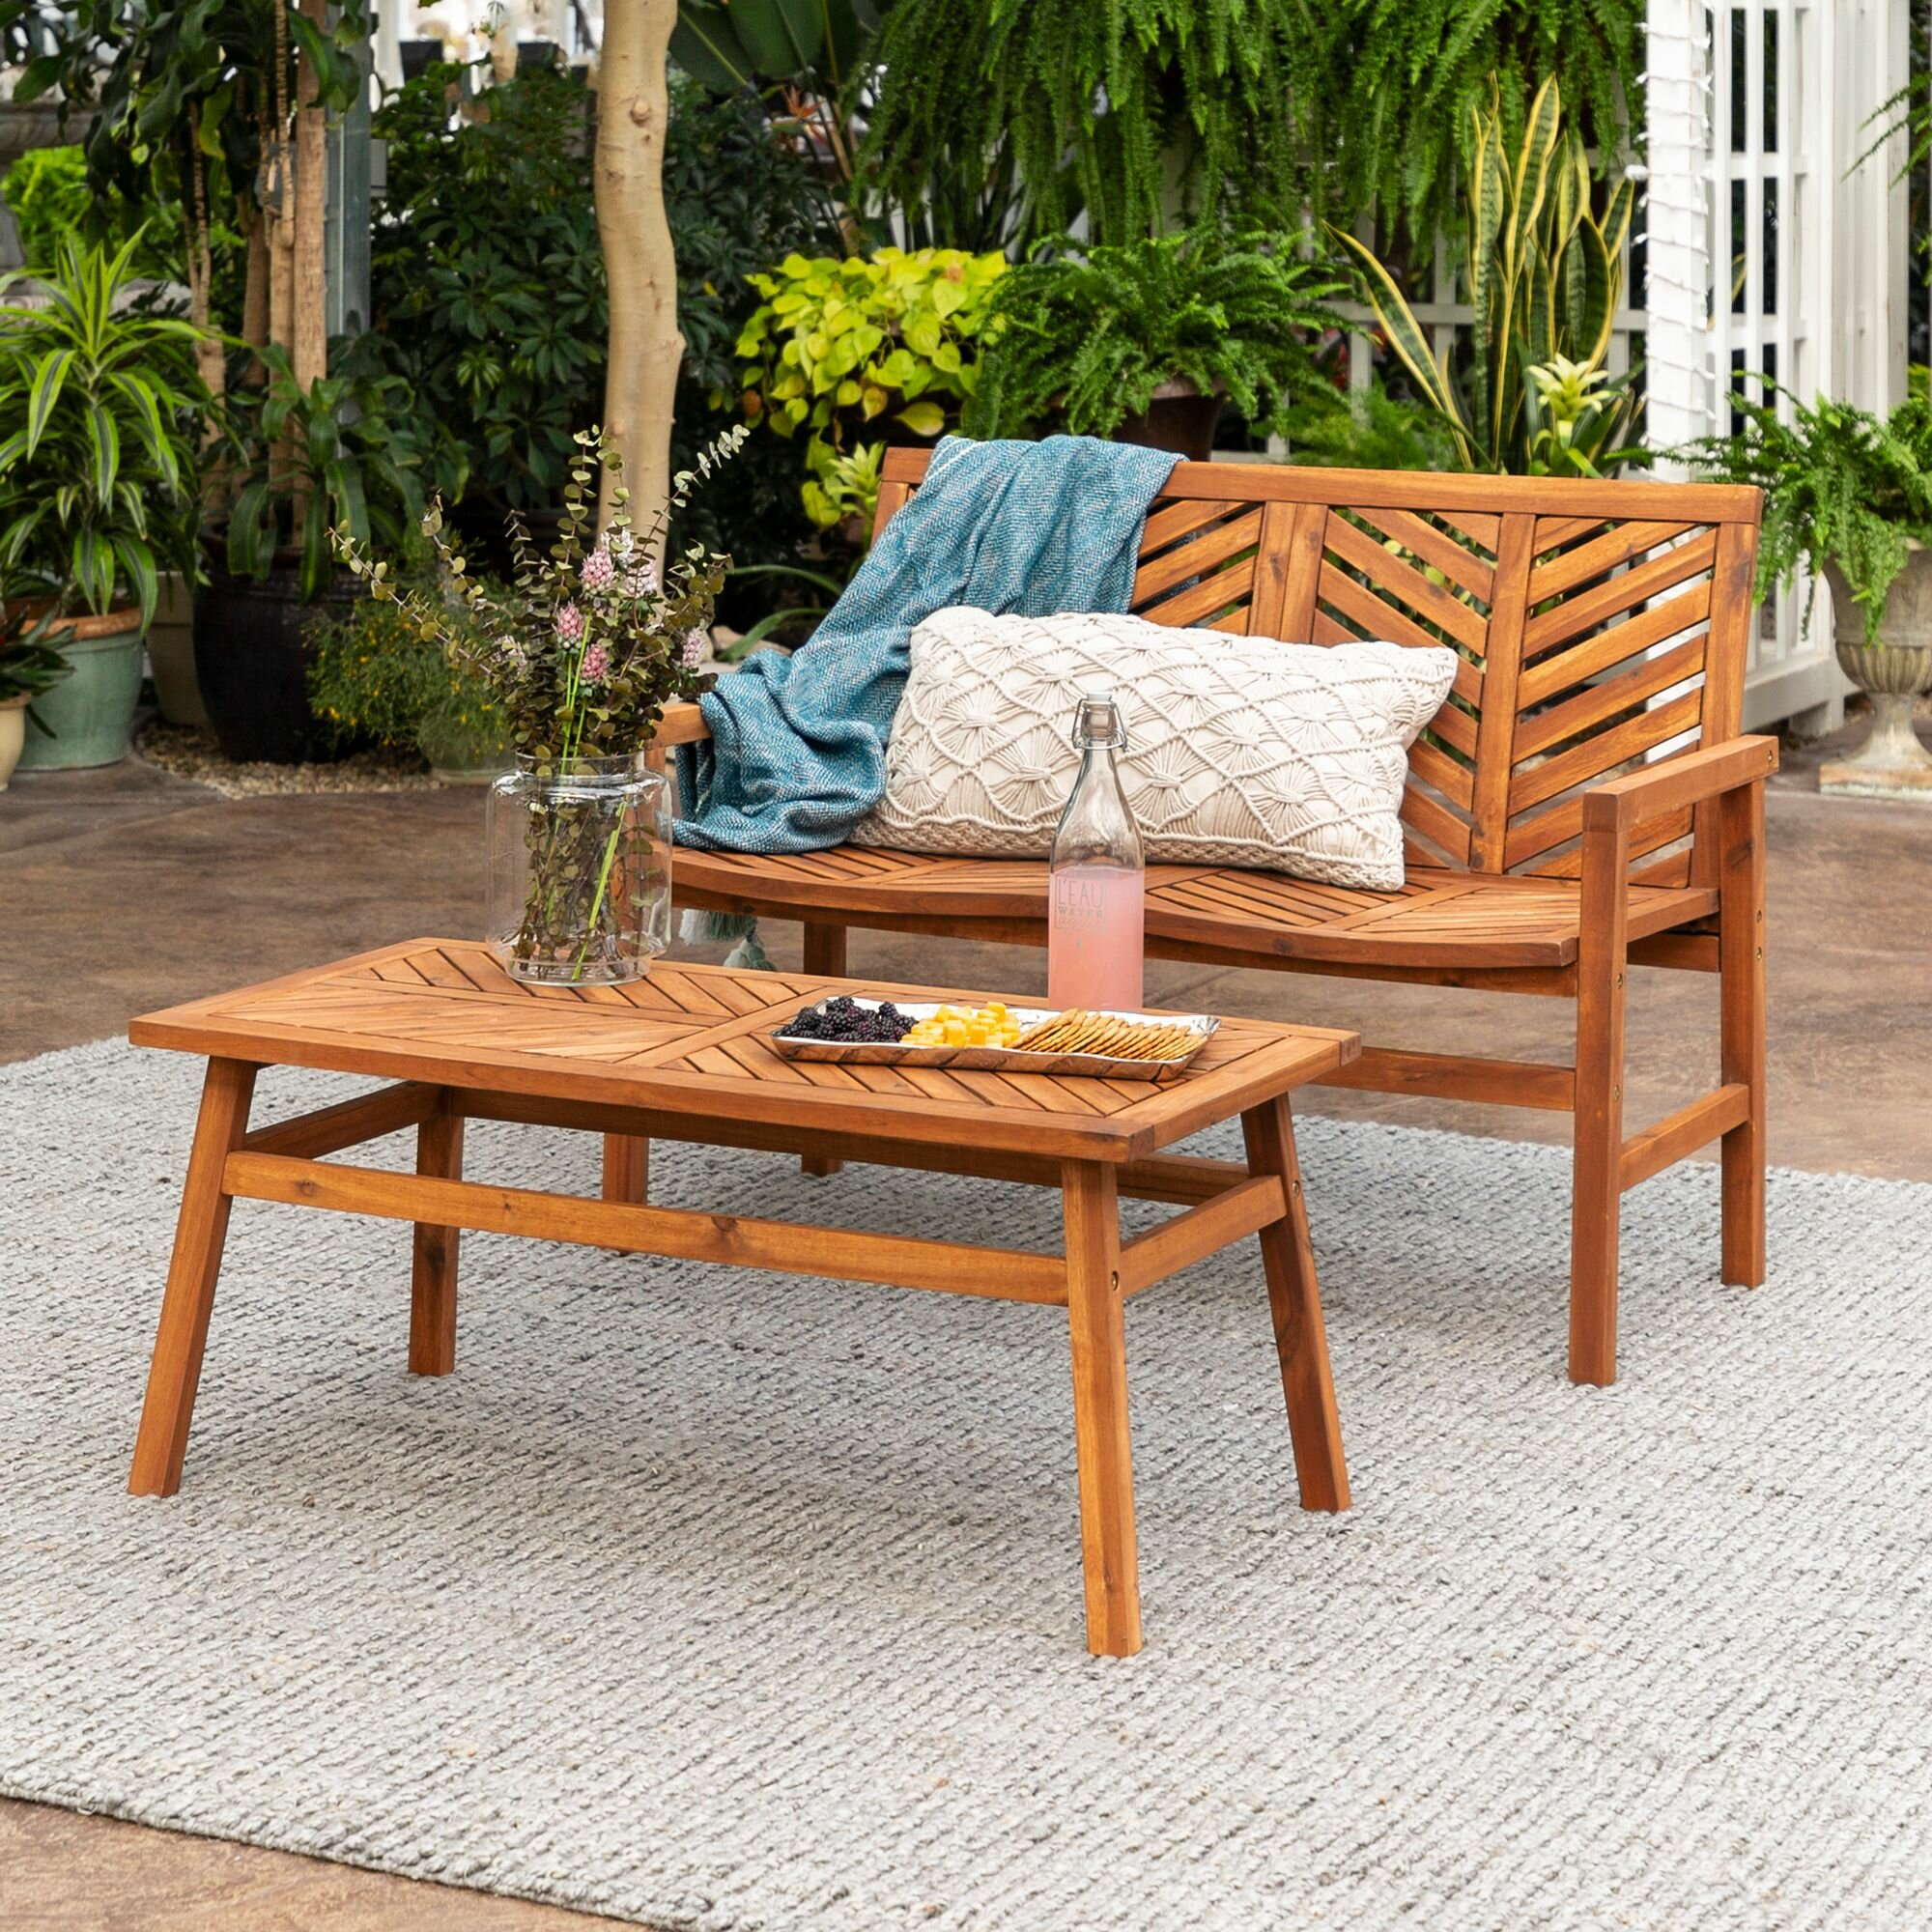 Skoog 2 Piece Seating Group Intended For Skoog Chevron Wooden Garden Benches (View 15 of 25)